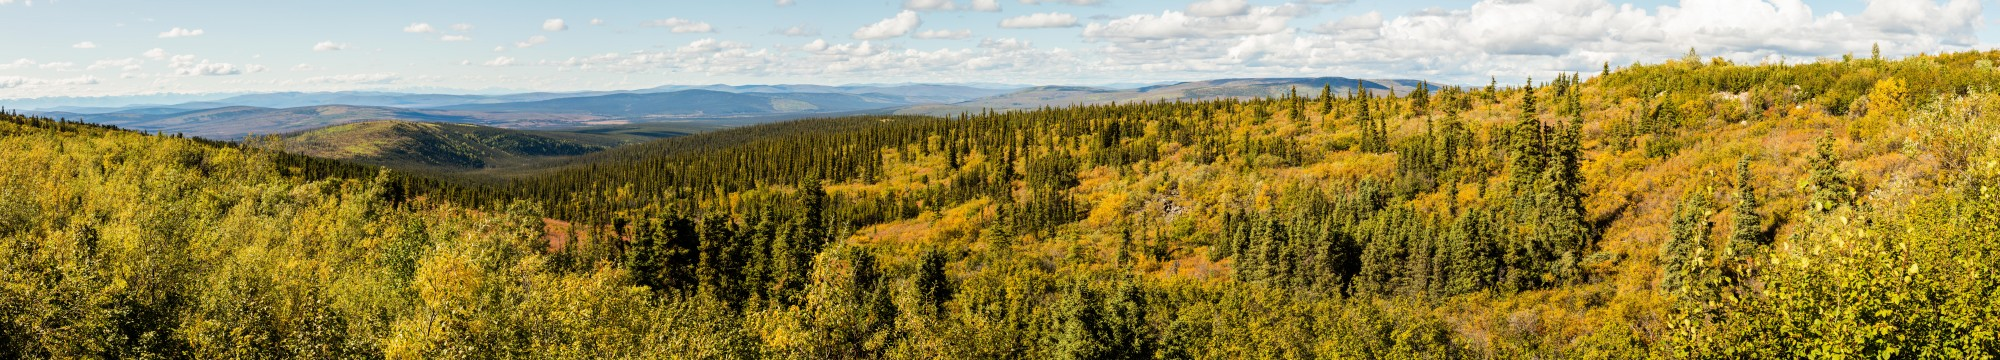 Paisaje en el Sureste de Fairbanks, Alaska, Estados Unidos, 2017-08-28, DD 119-125 PAN